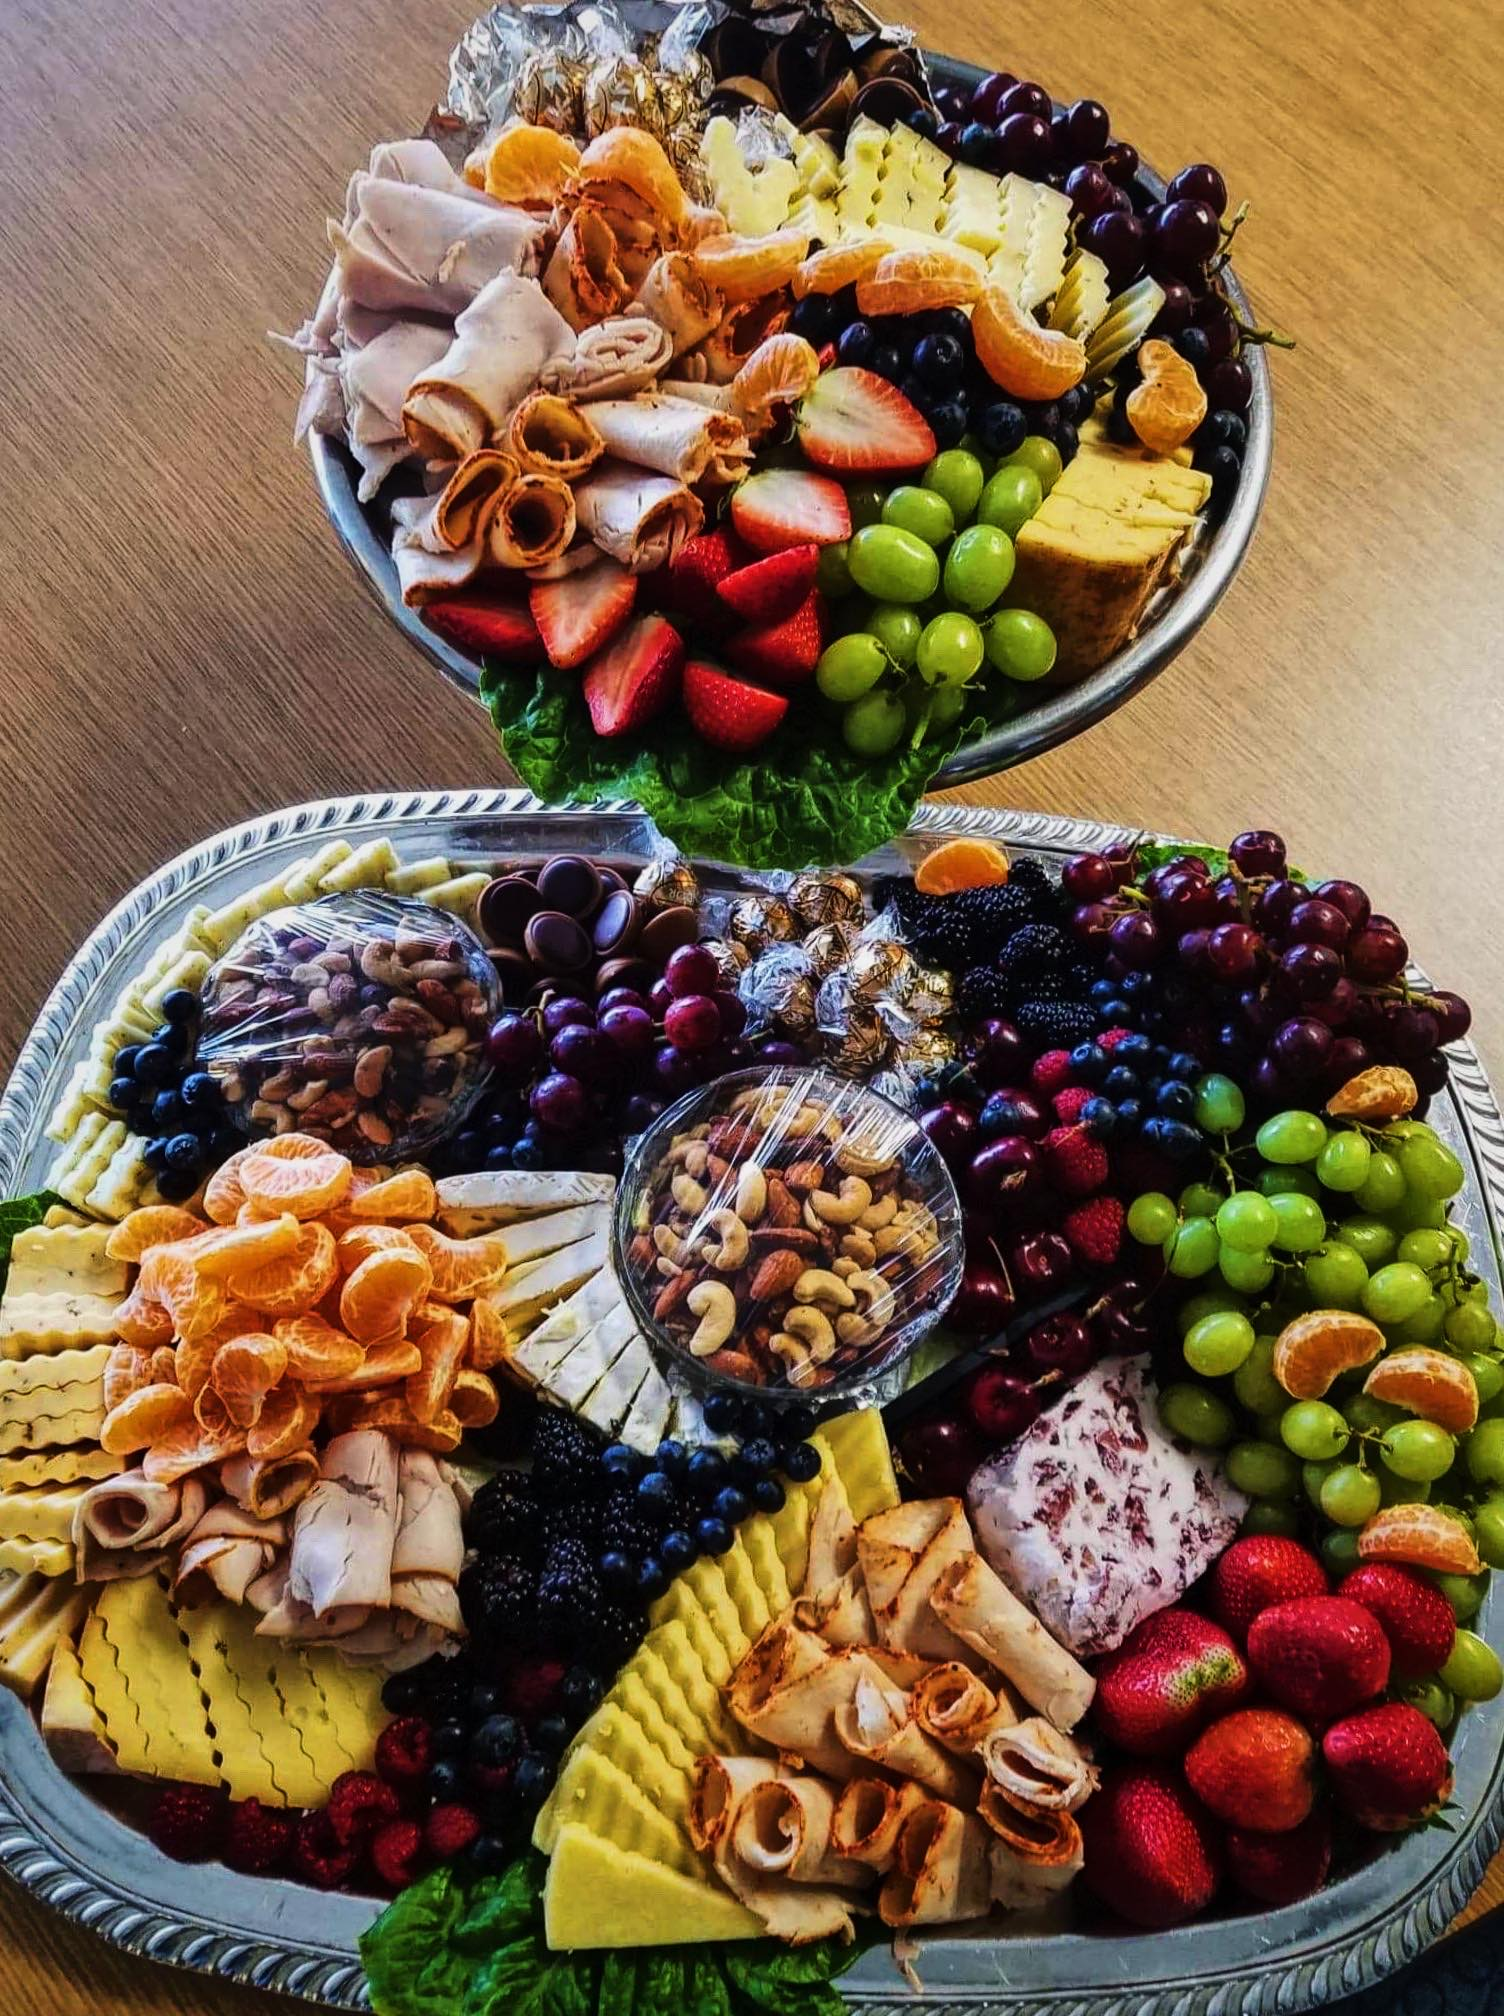 The Everything Fruit Platter